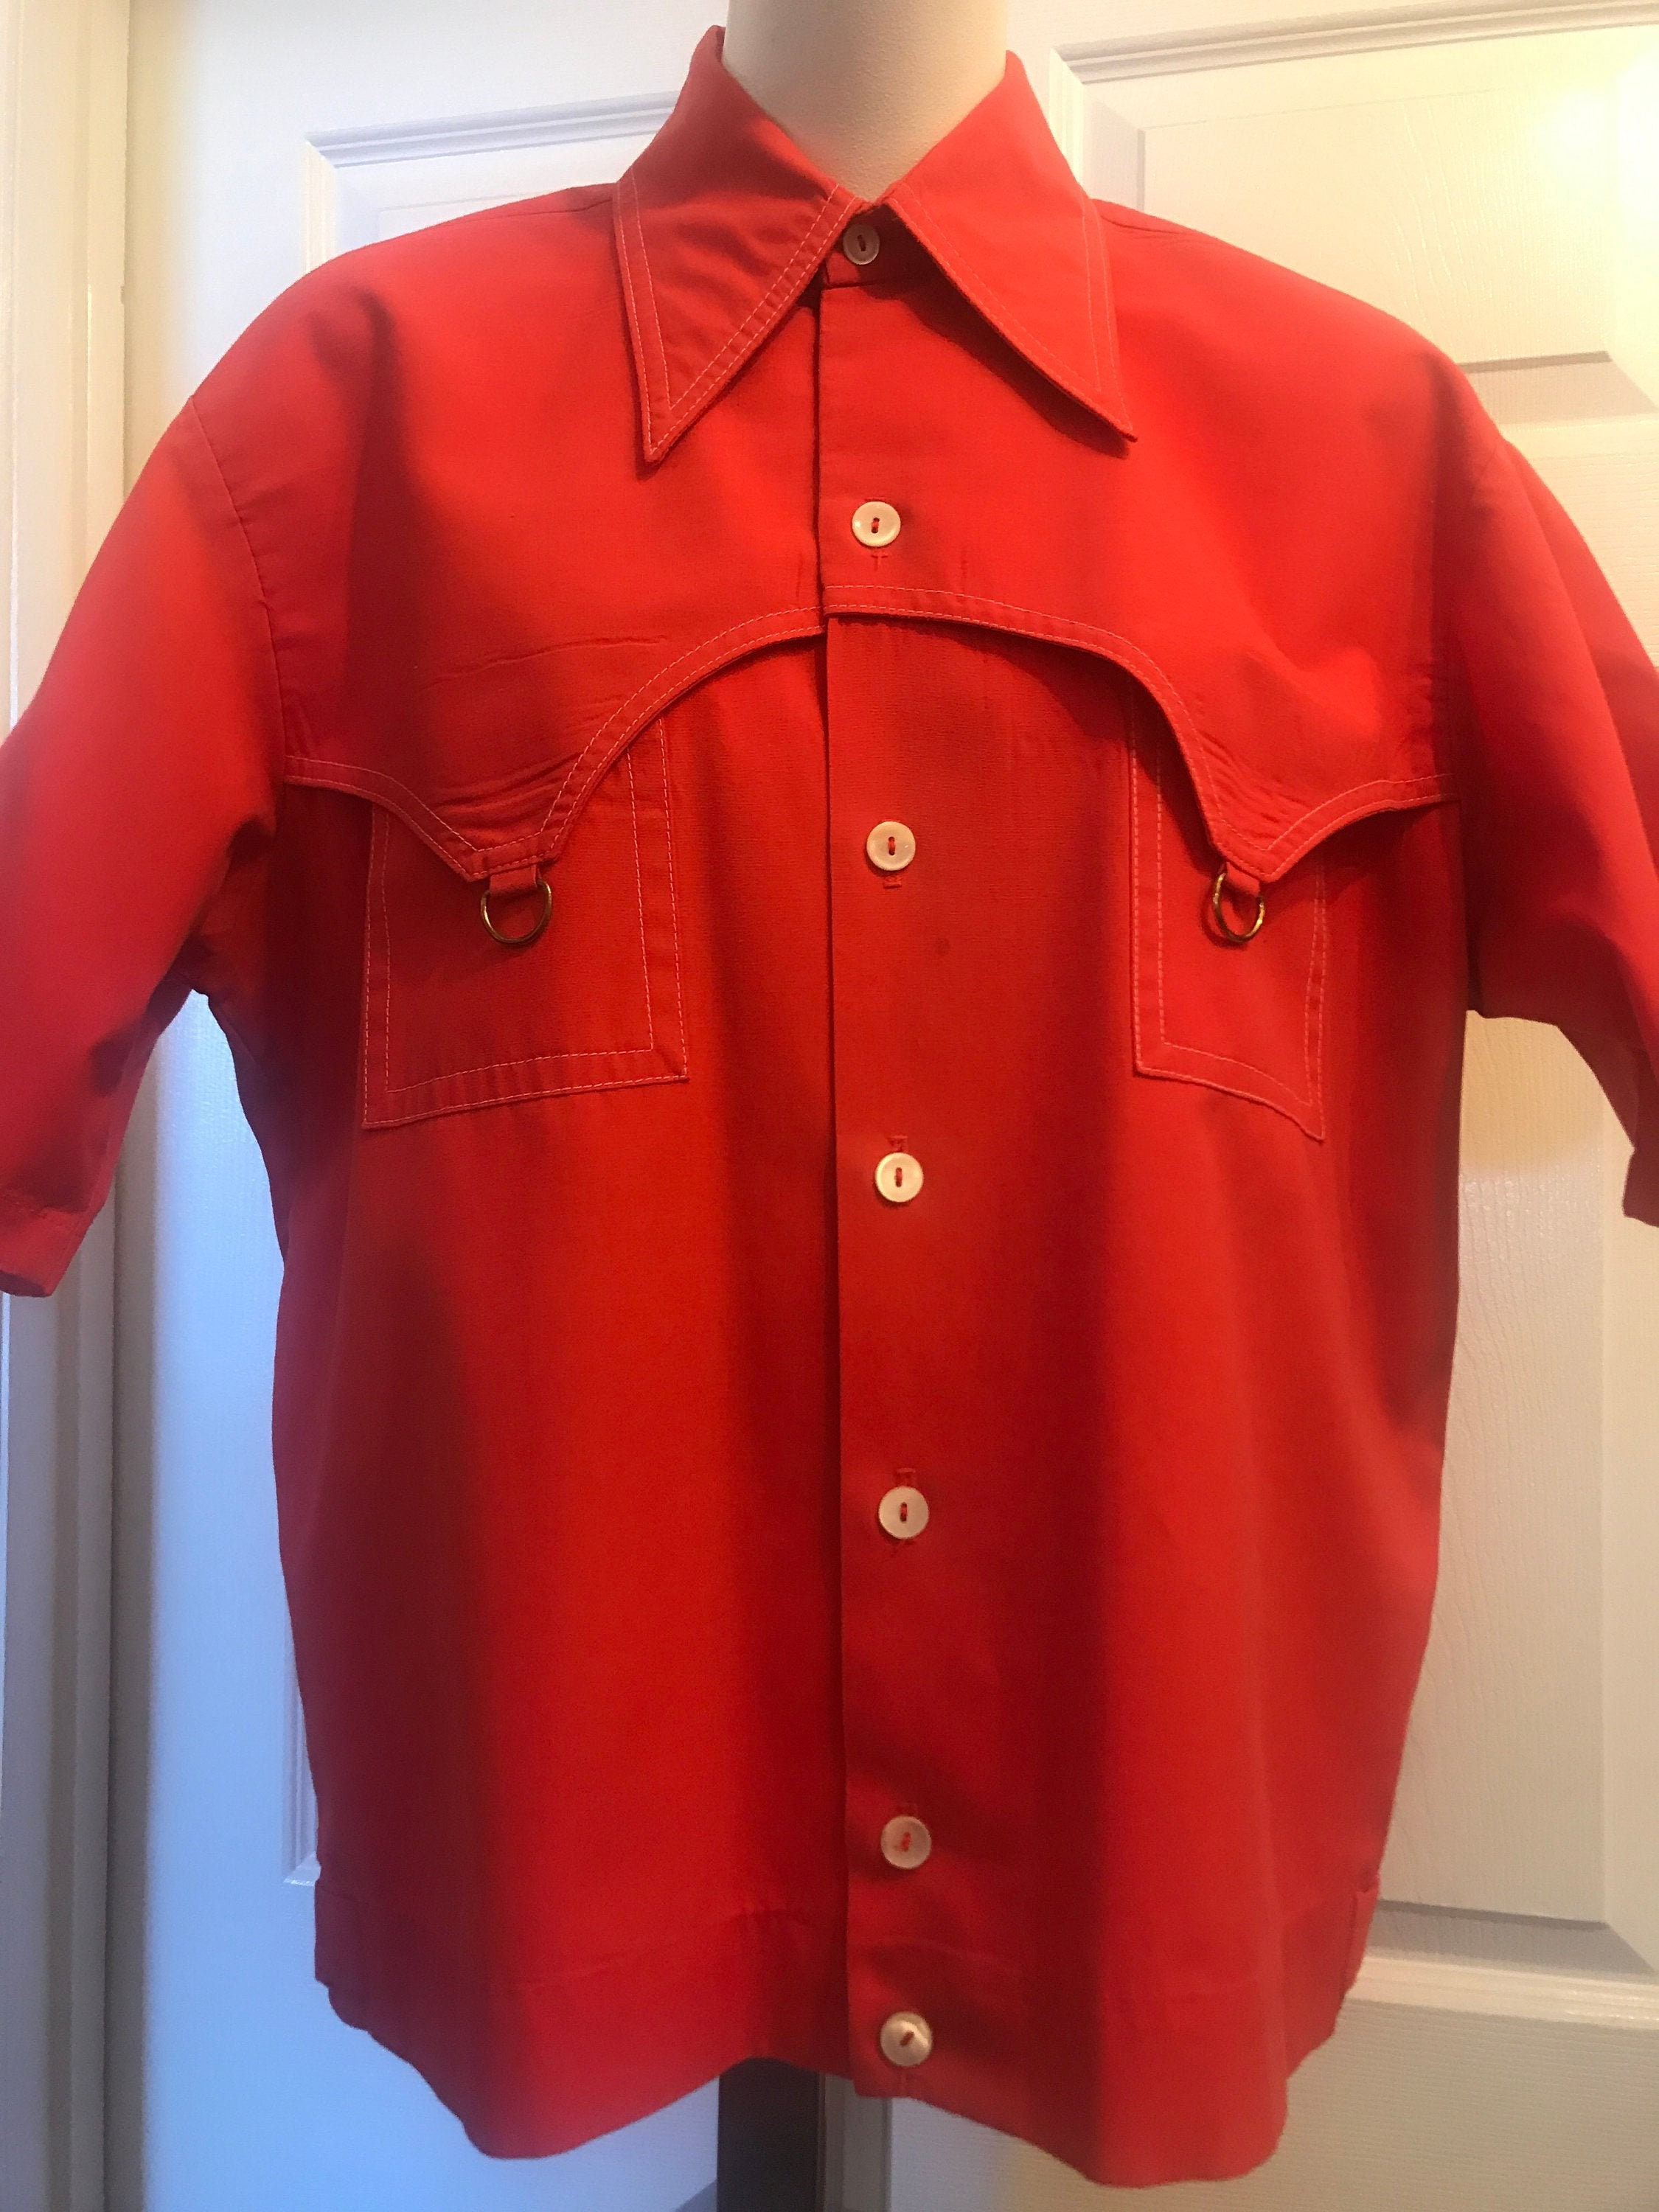 1940s Men's Shirts, Sweaters, Vests 1940s Mens Sportswear Shirt Desmonds Palm Springs $5.00 AT vintagedancer.com